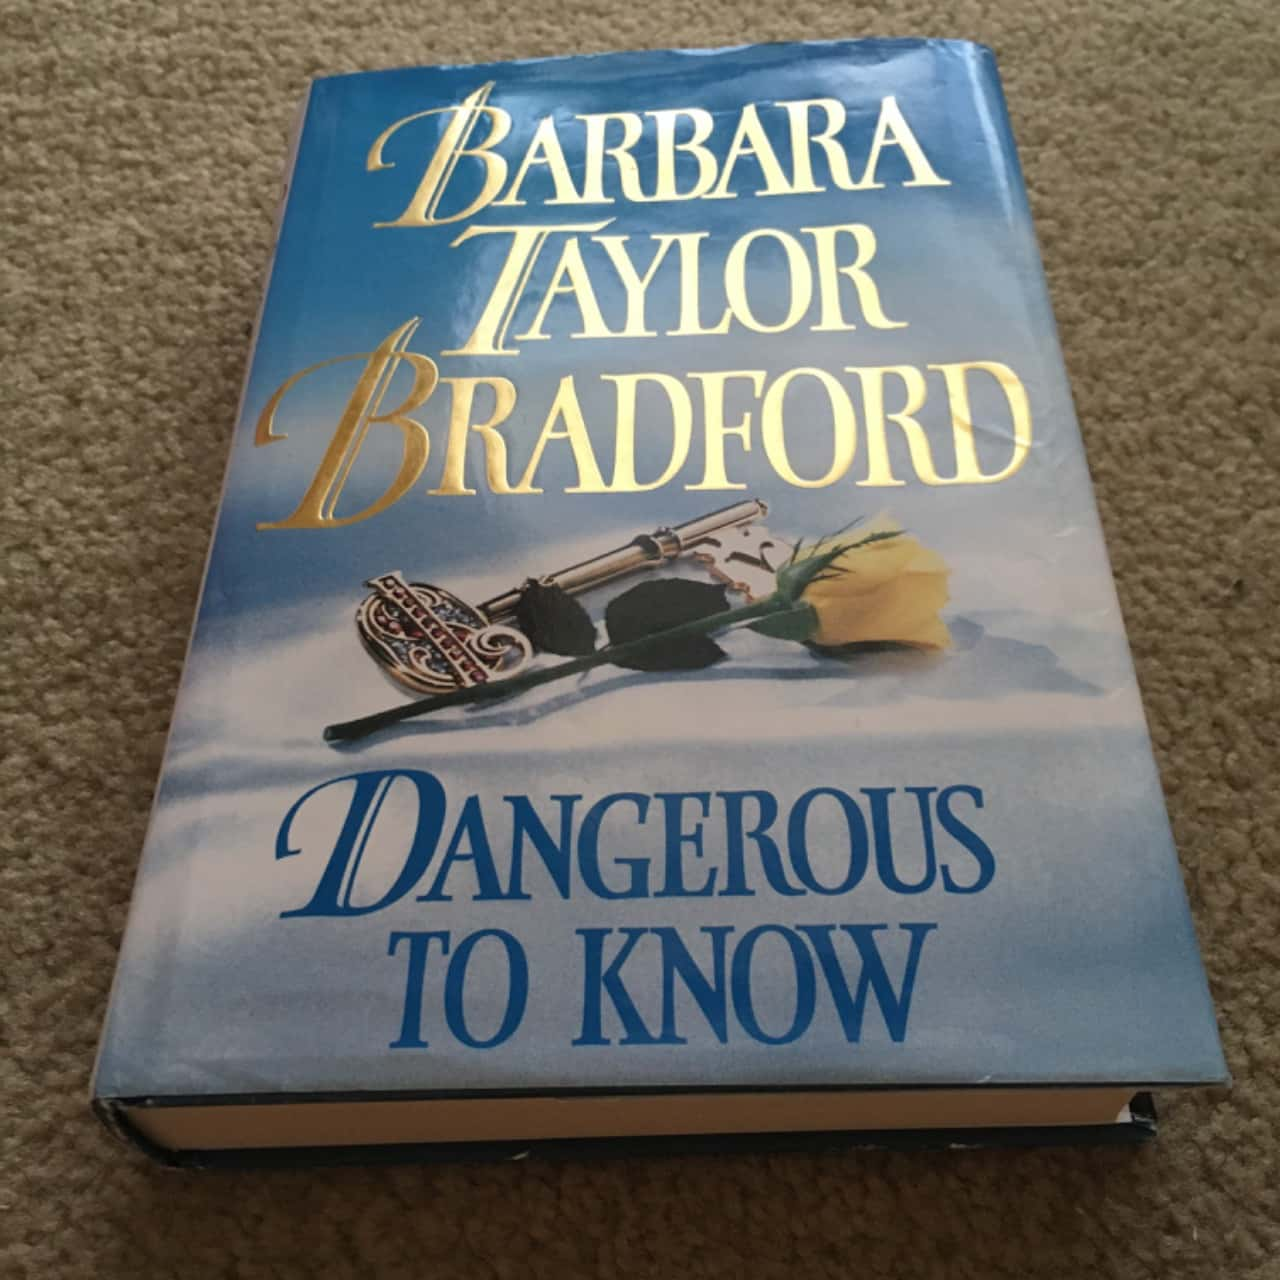 Dangerous To Know - Book by Barbara Taylor Bradford